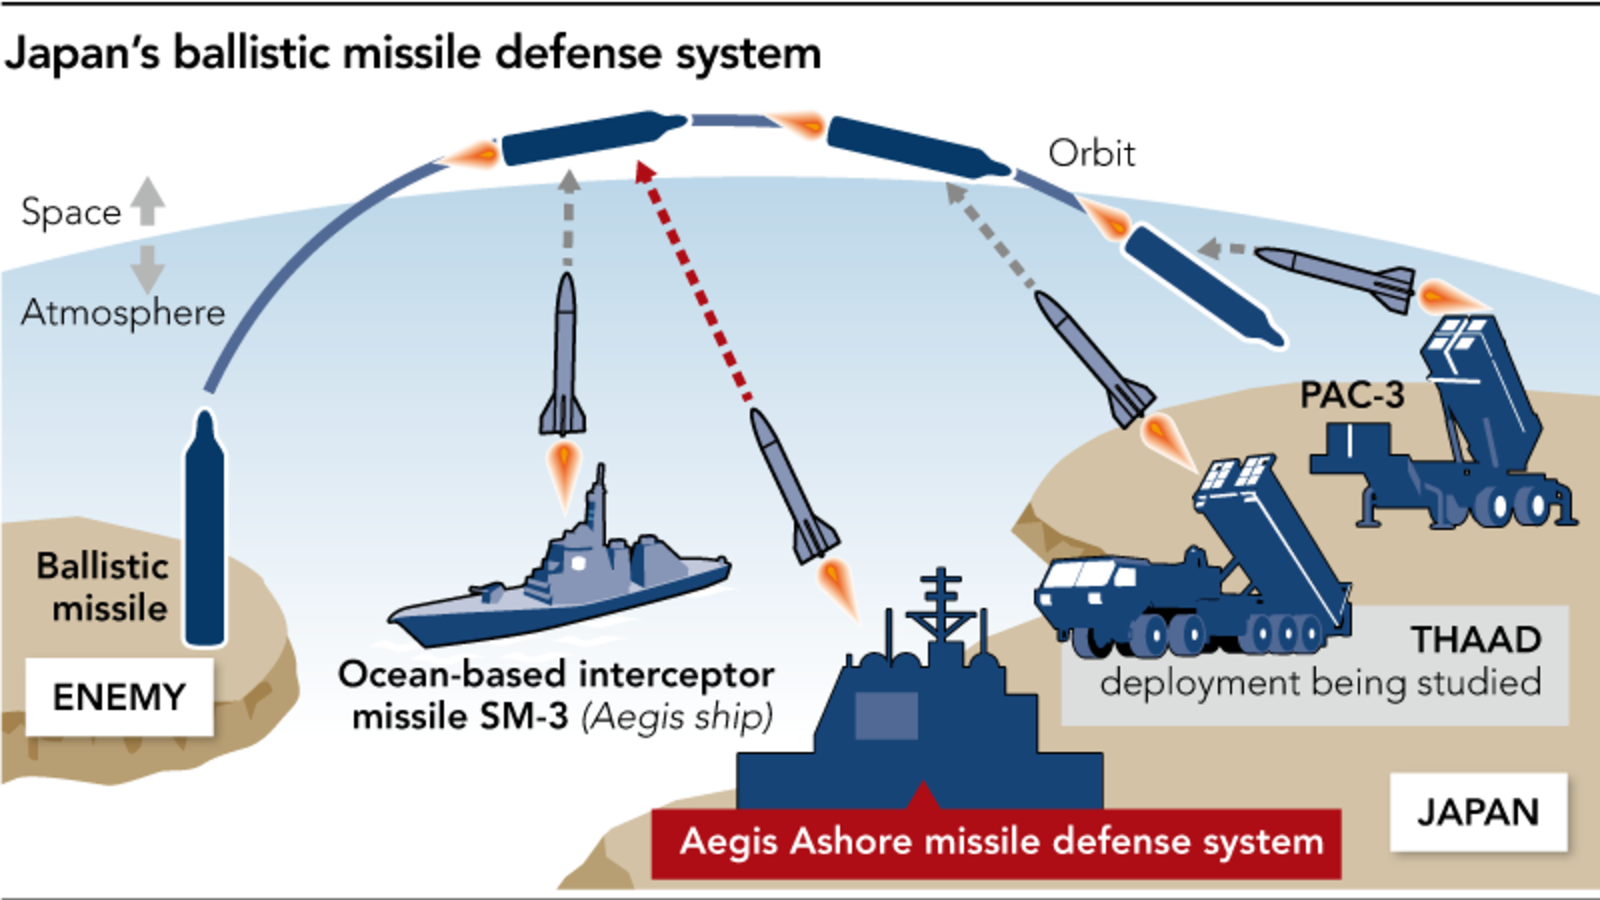 Japan faces obstacles to deploying new missile defenses - Nikkei ...